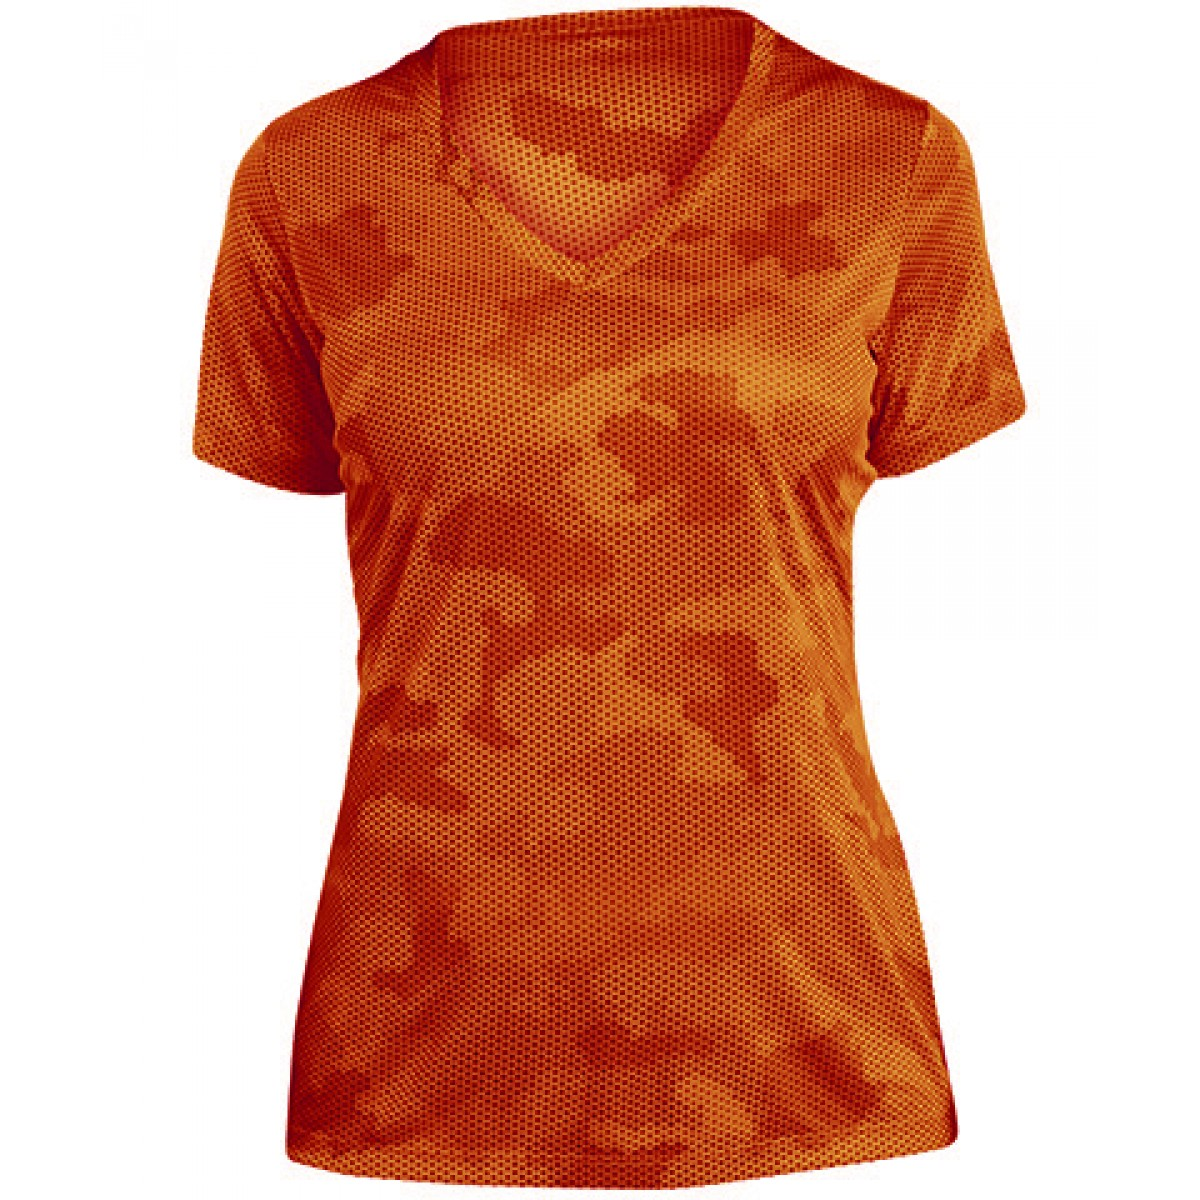 Ladies CamoHex V-Neck Tee-Orange-3XL